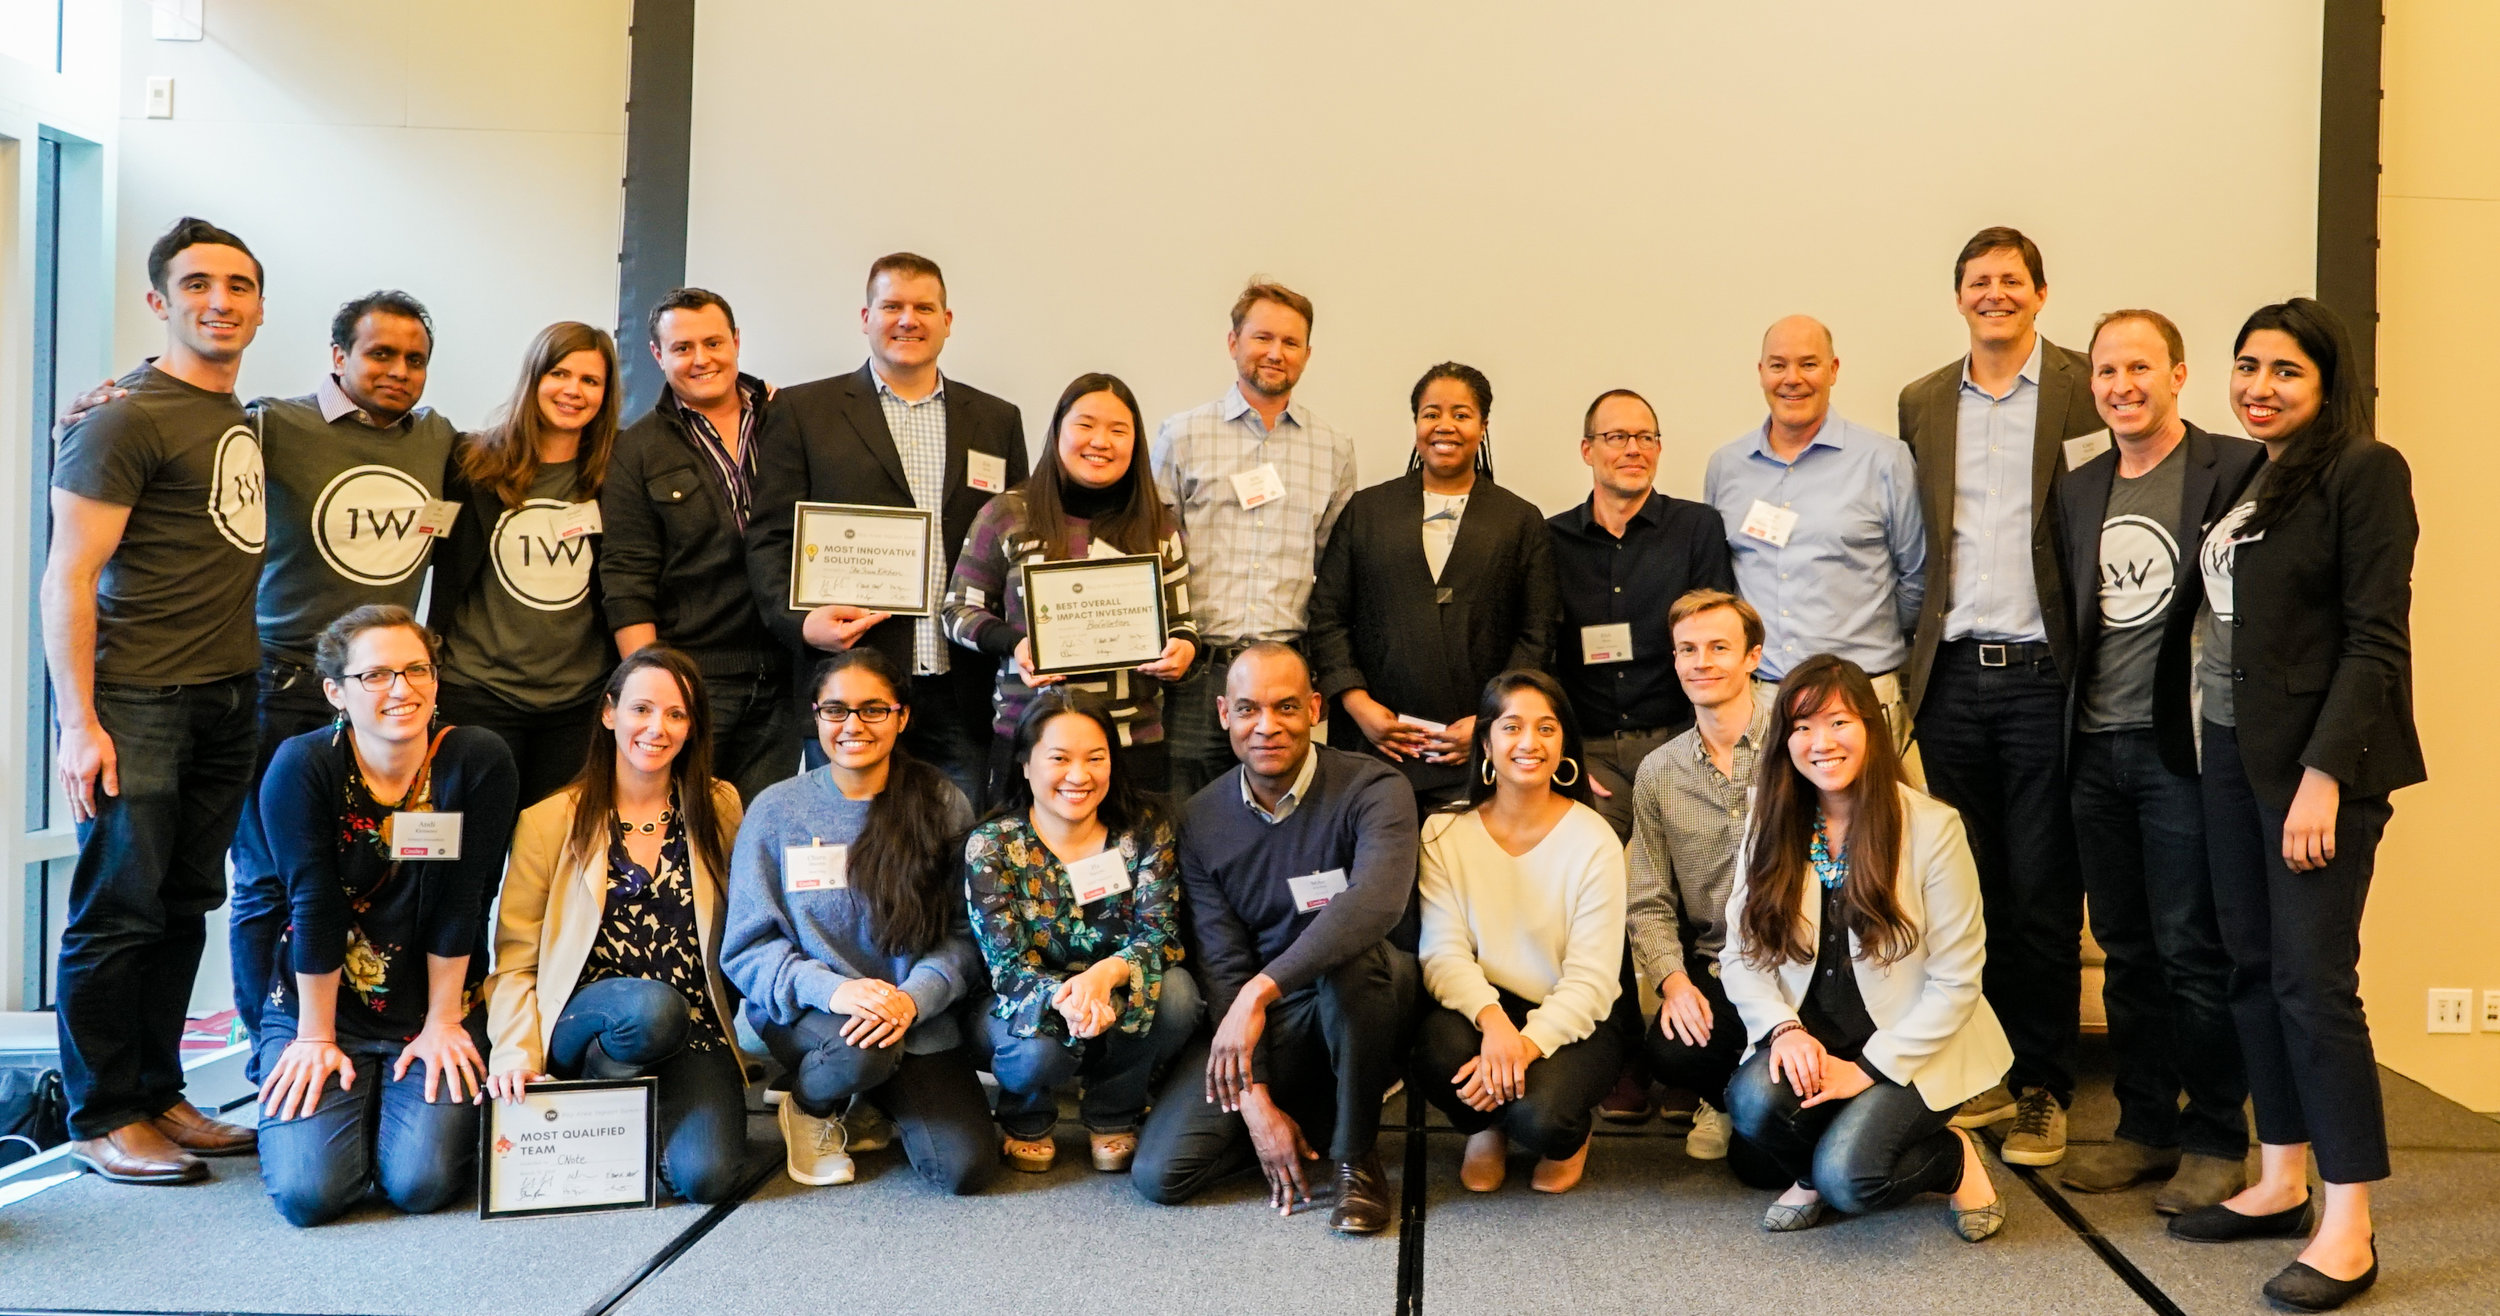 The pitching entrepreneurs, judges, speakers and ONE WORLD team members at the 2019 BAIS.